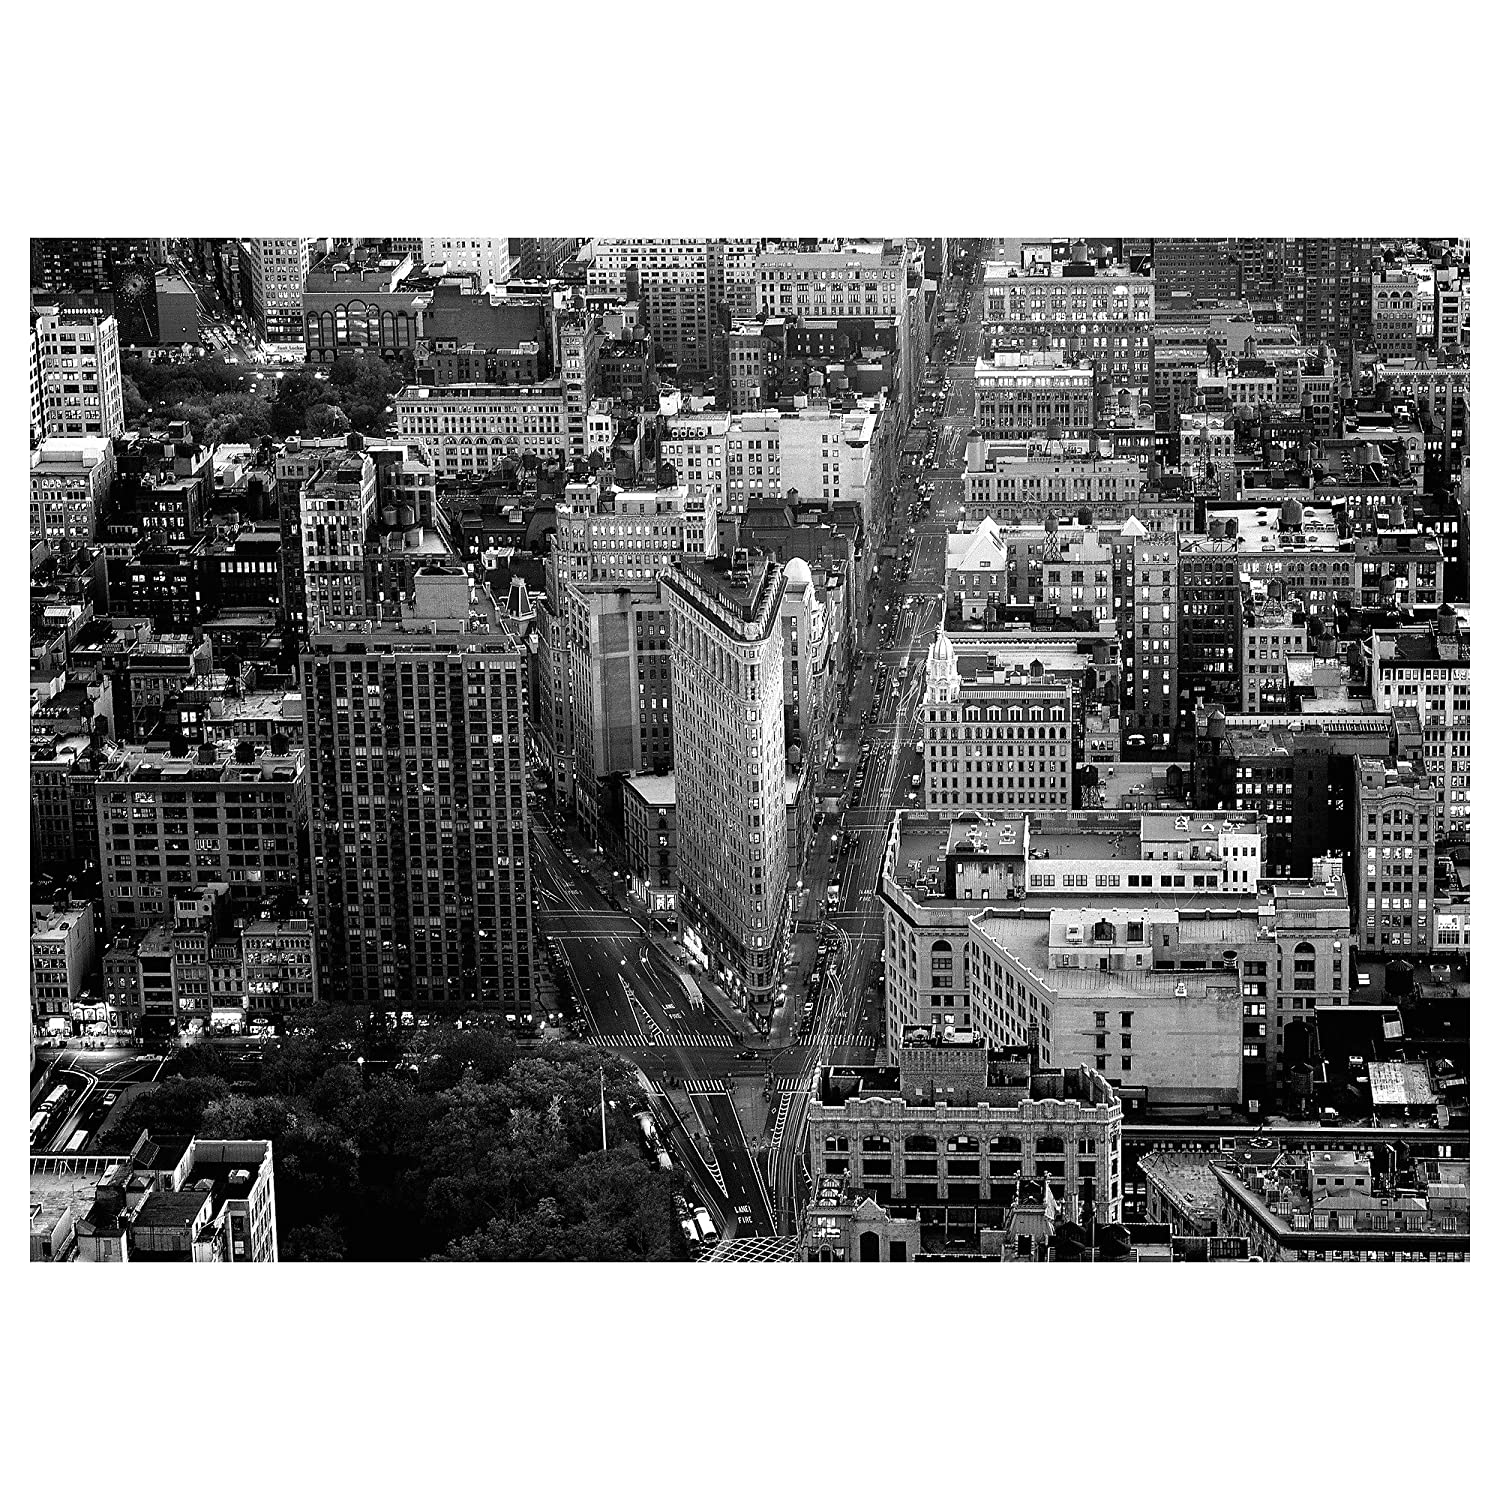 Amazon.com: Ikea Premiär Picture, Flatiron Building, New York: Prints:  Posters U0026 Prints